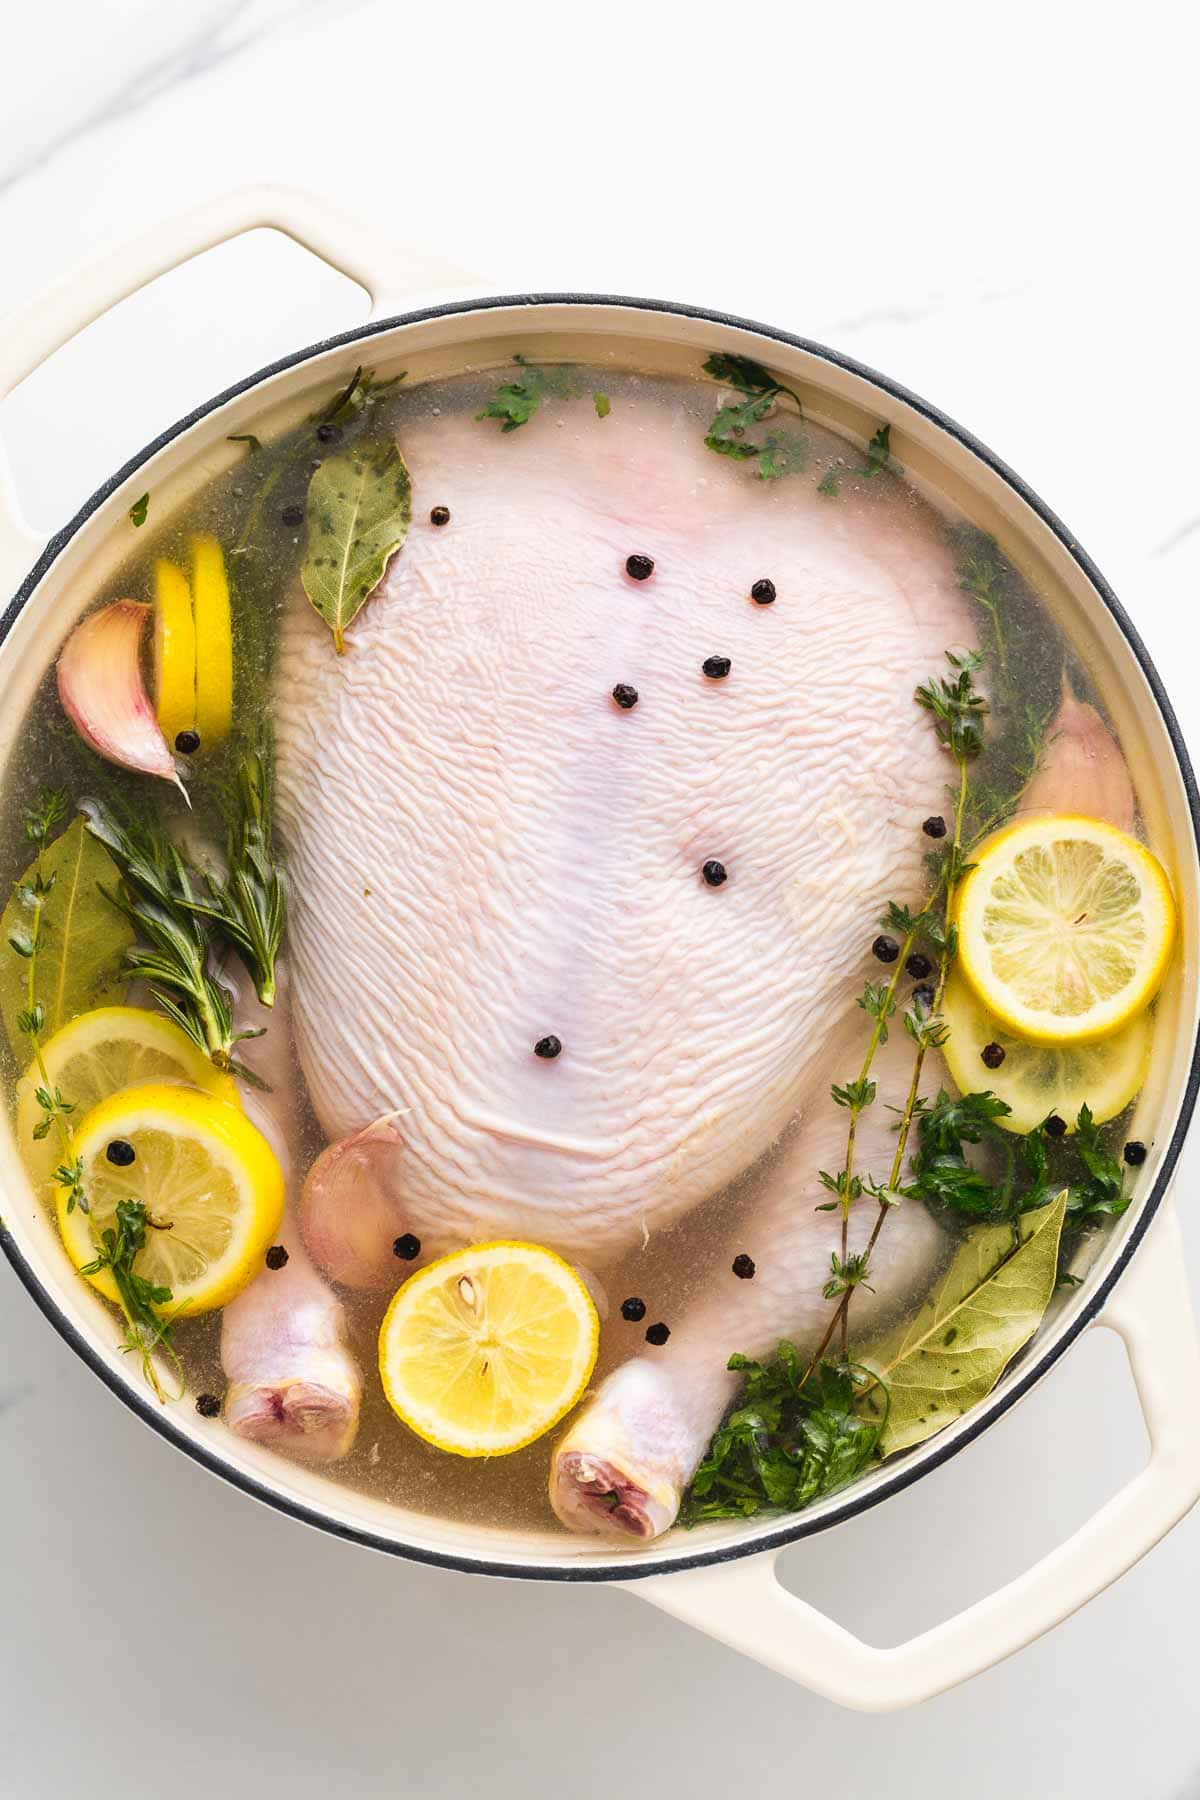 A whole chicken being brined in a large pot with slices of lemon, herbs, garlic cloves, and black peppercorns.